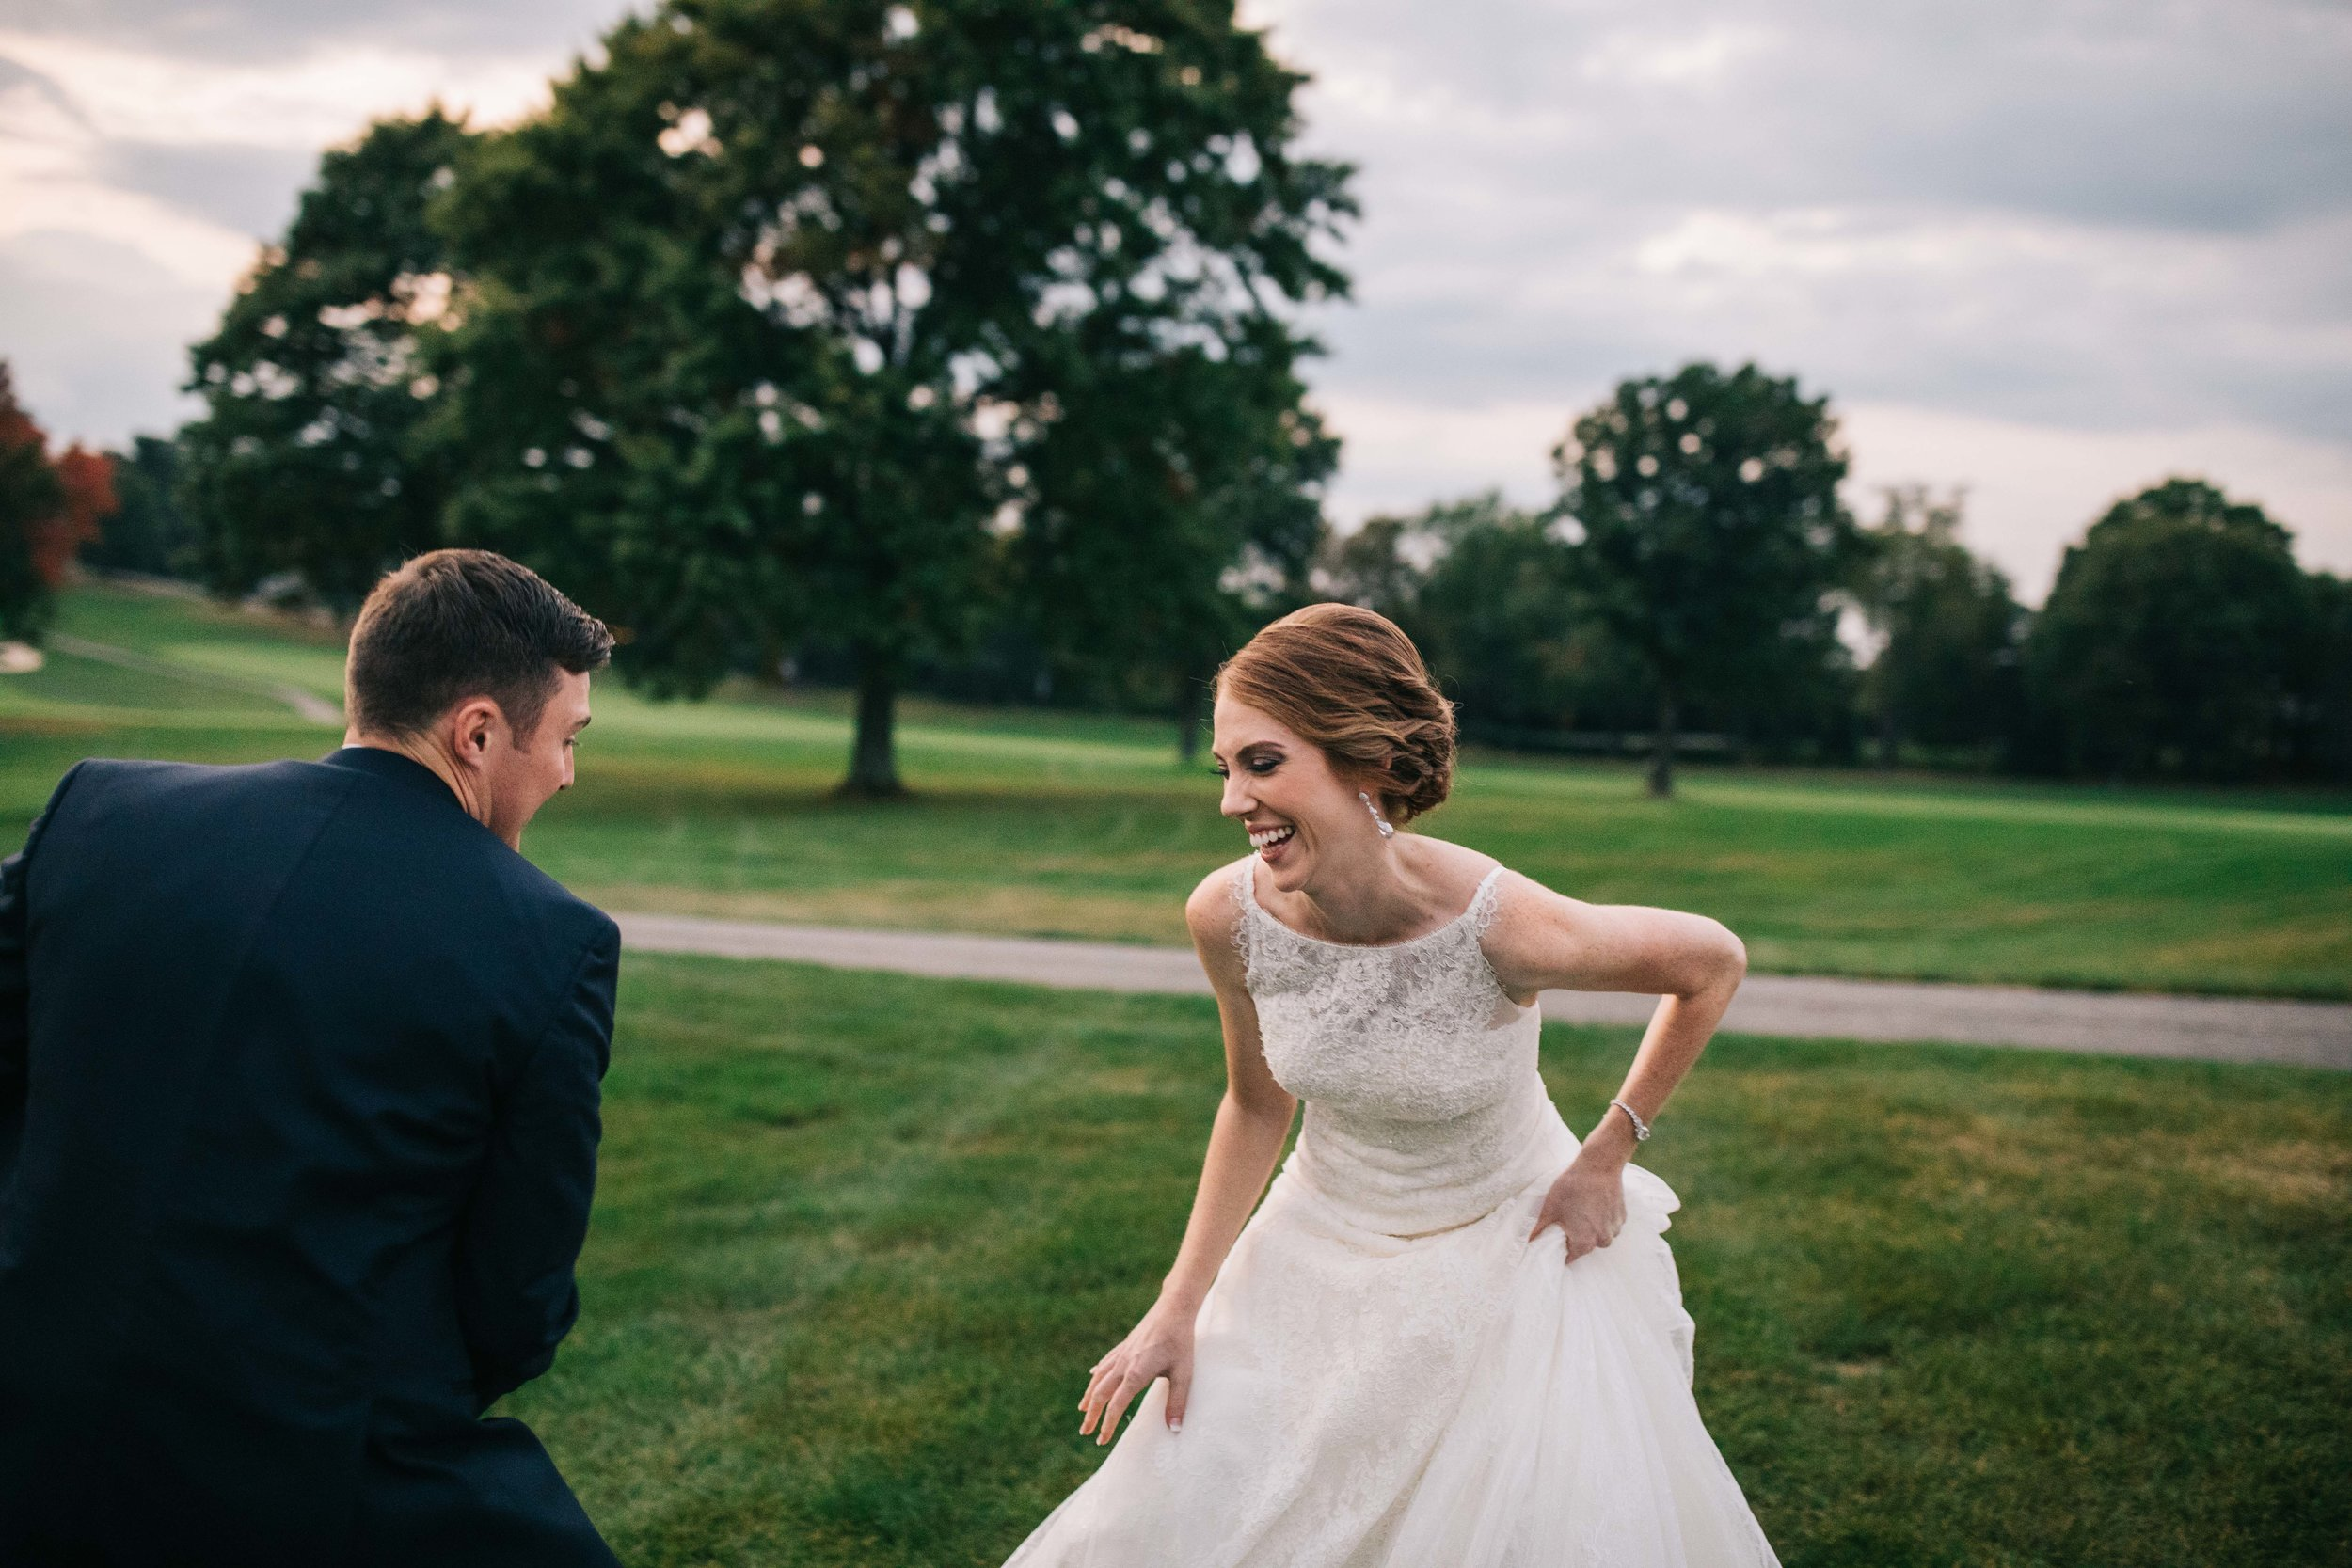 Sewickley Heights Golf Club Wedding - Ahsley & Ethan-448.jpg